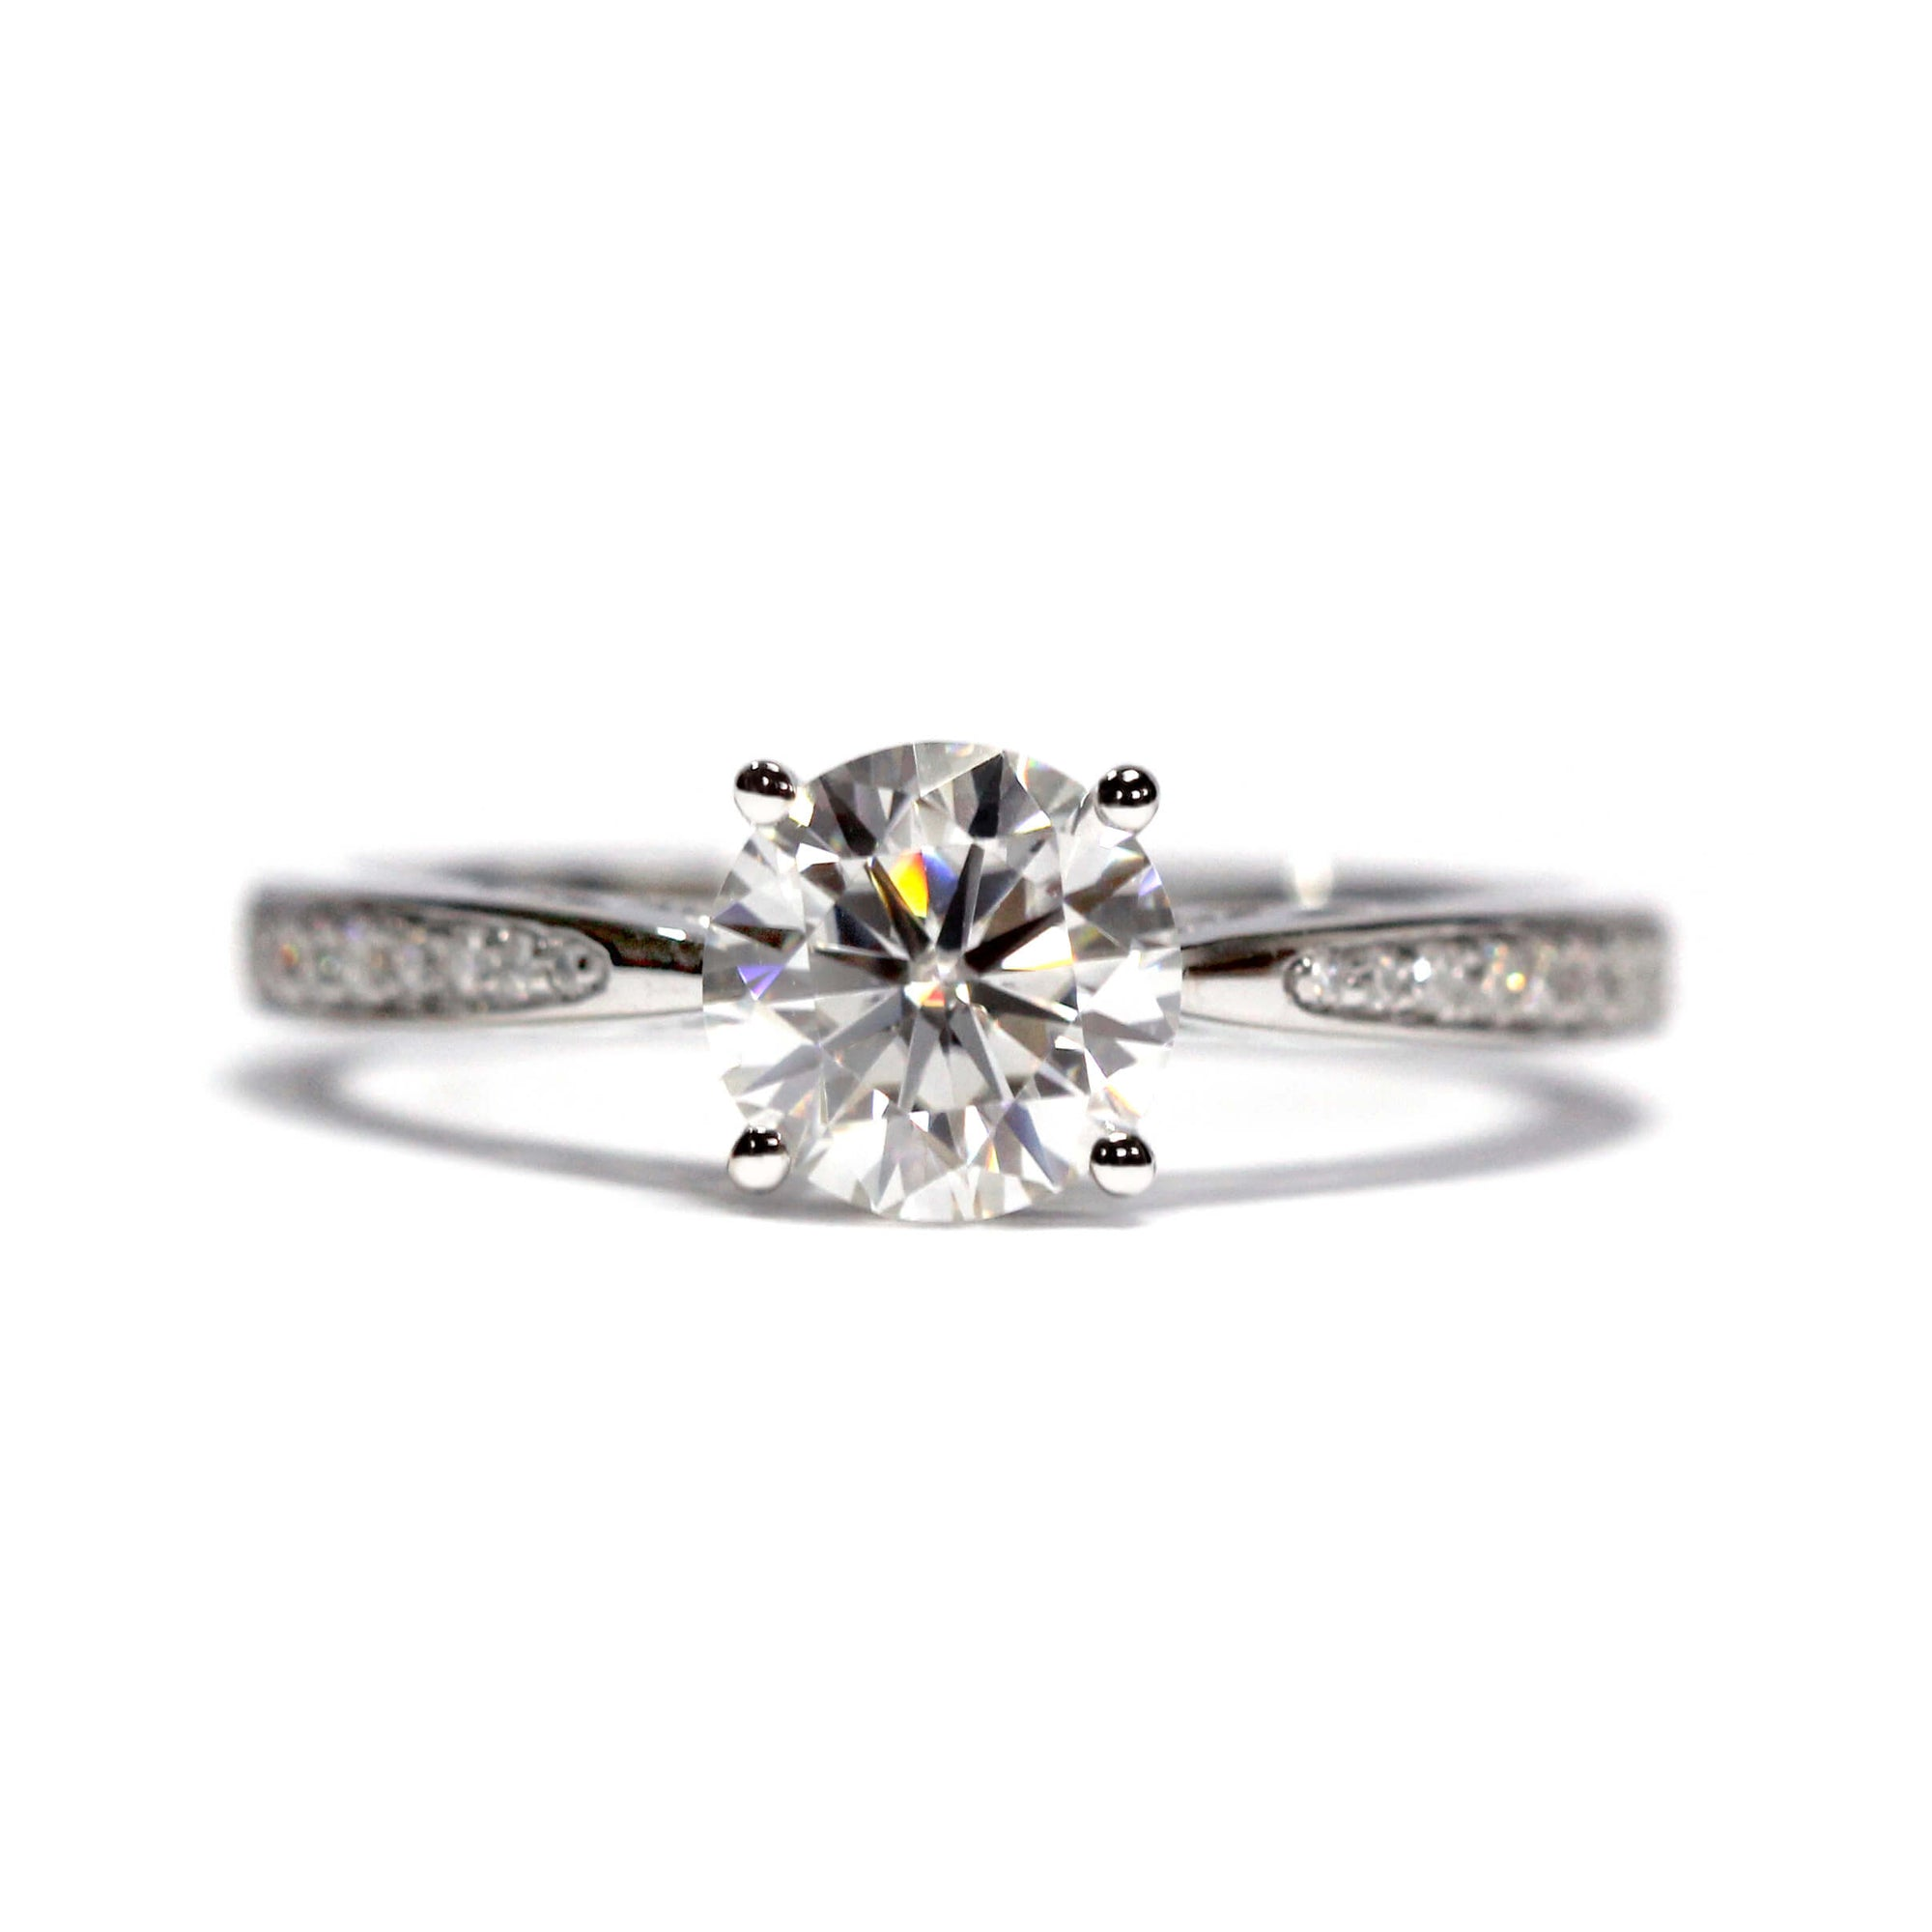 1 Carat Moissanite ArtCarved Engagement Ring with Accents - LeCaine Gems